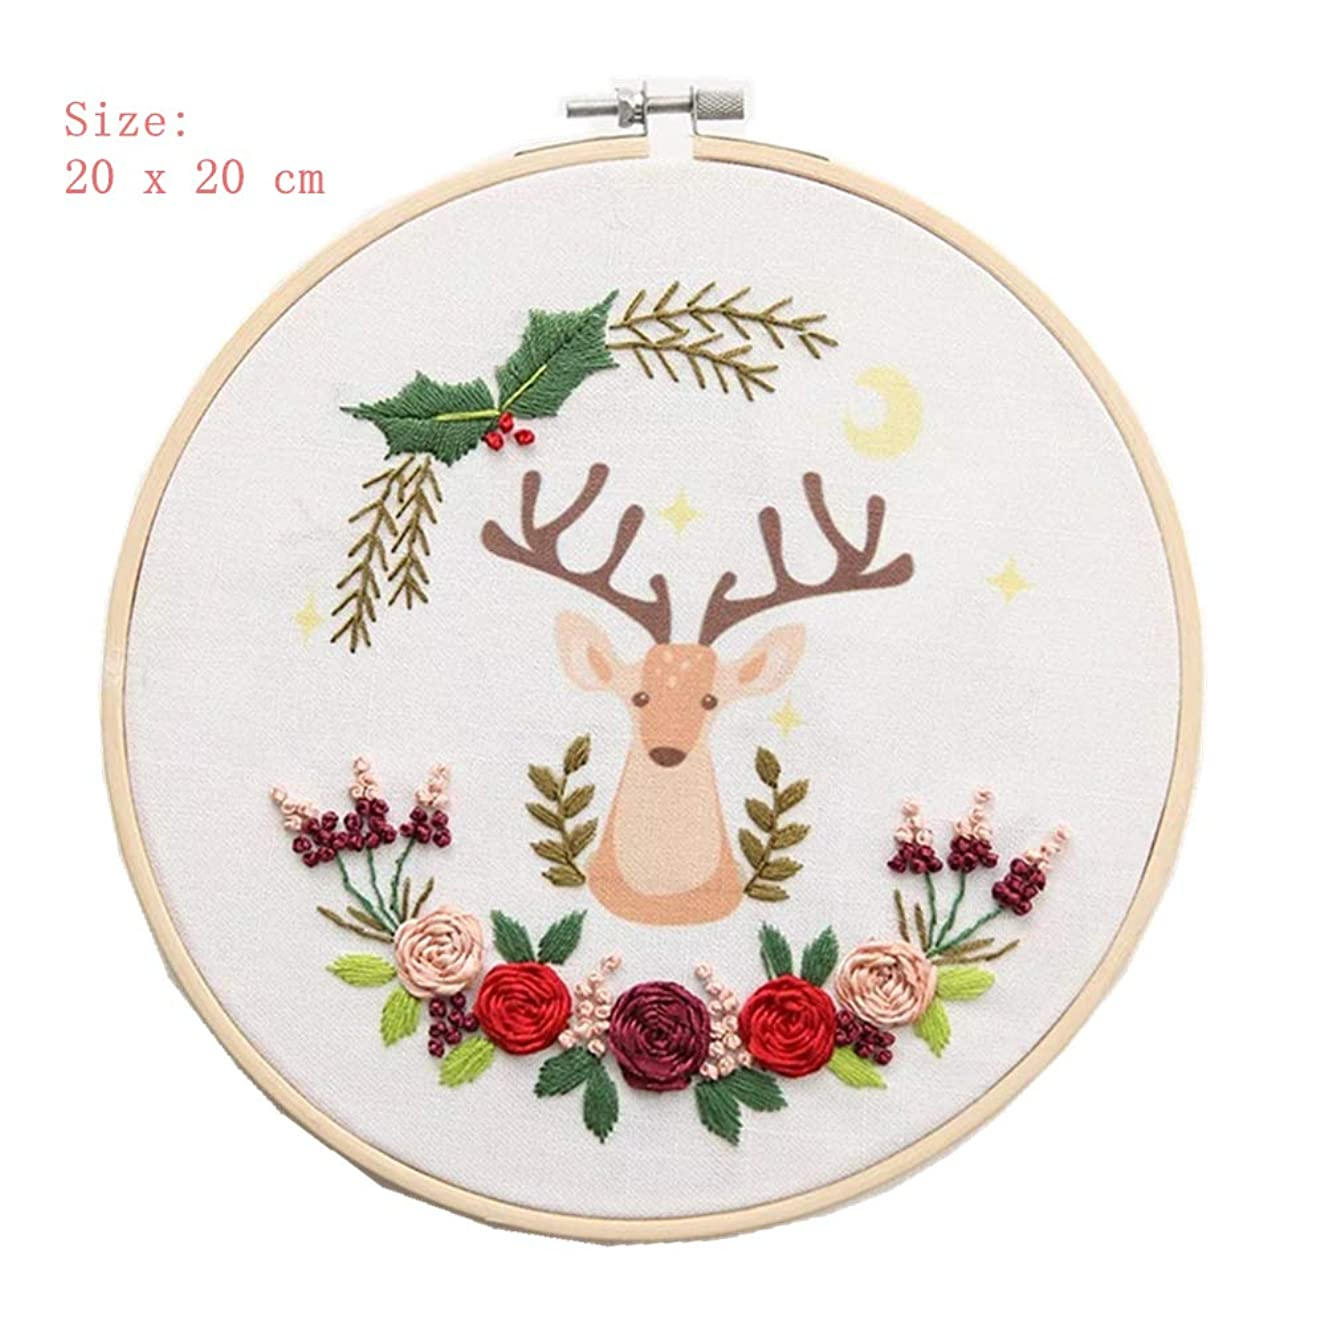 Hand Embroidery DIY Wooden Cross Stitch Hoop Mini Ring Embroidery Circle Sewing Kit Frame Craft (Christmas Deer)